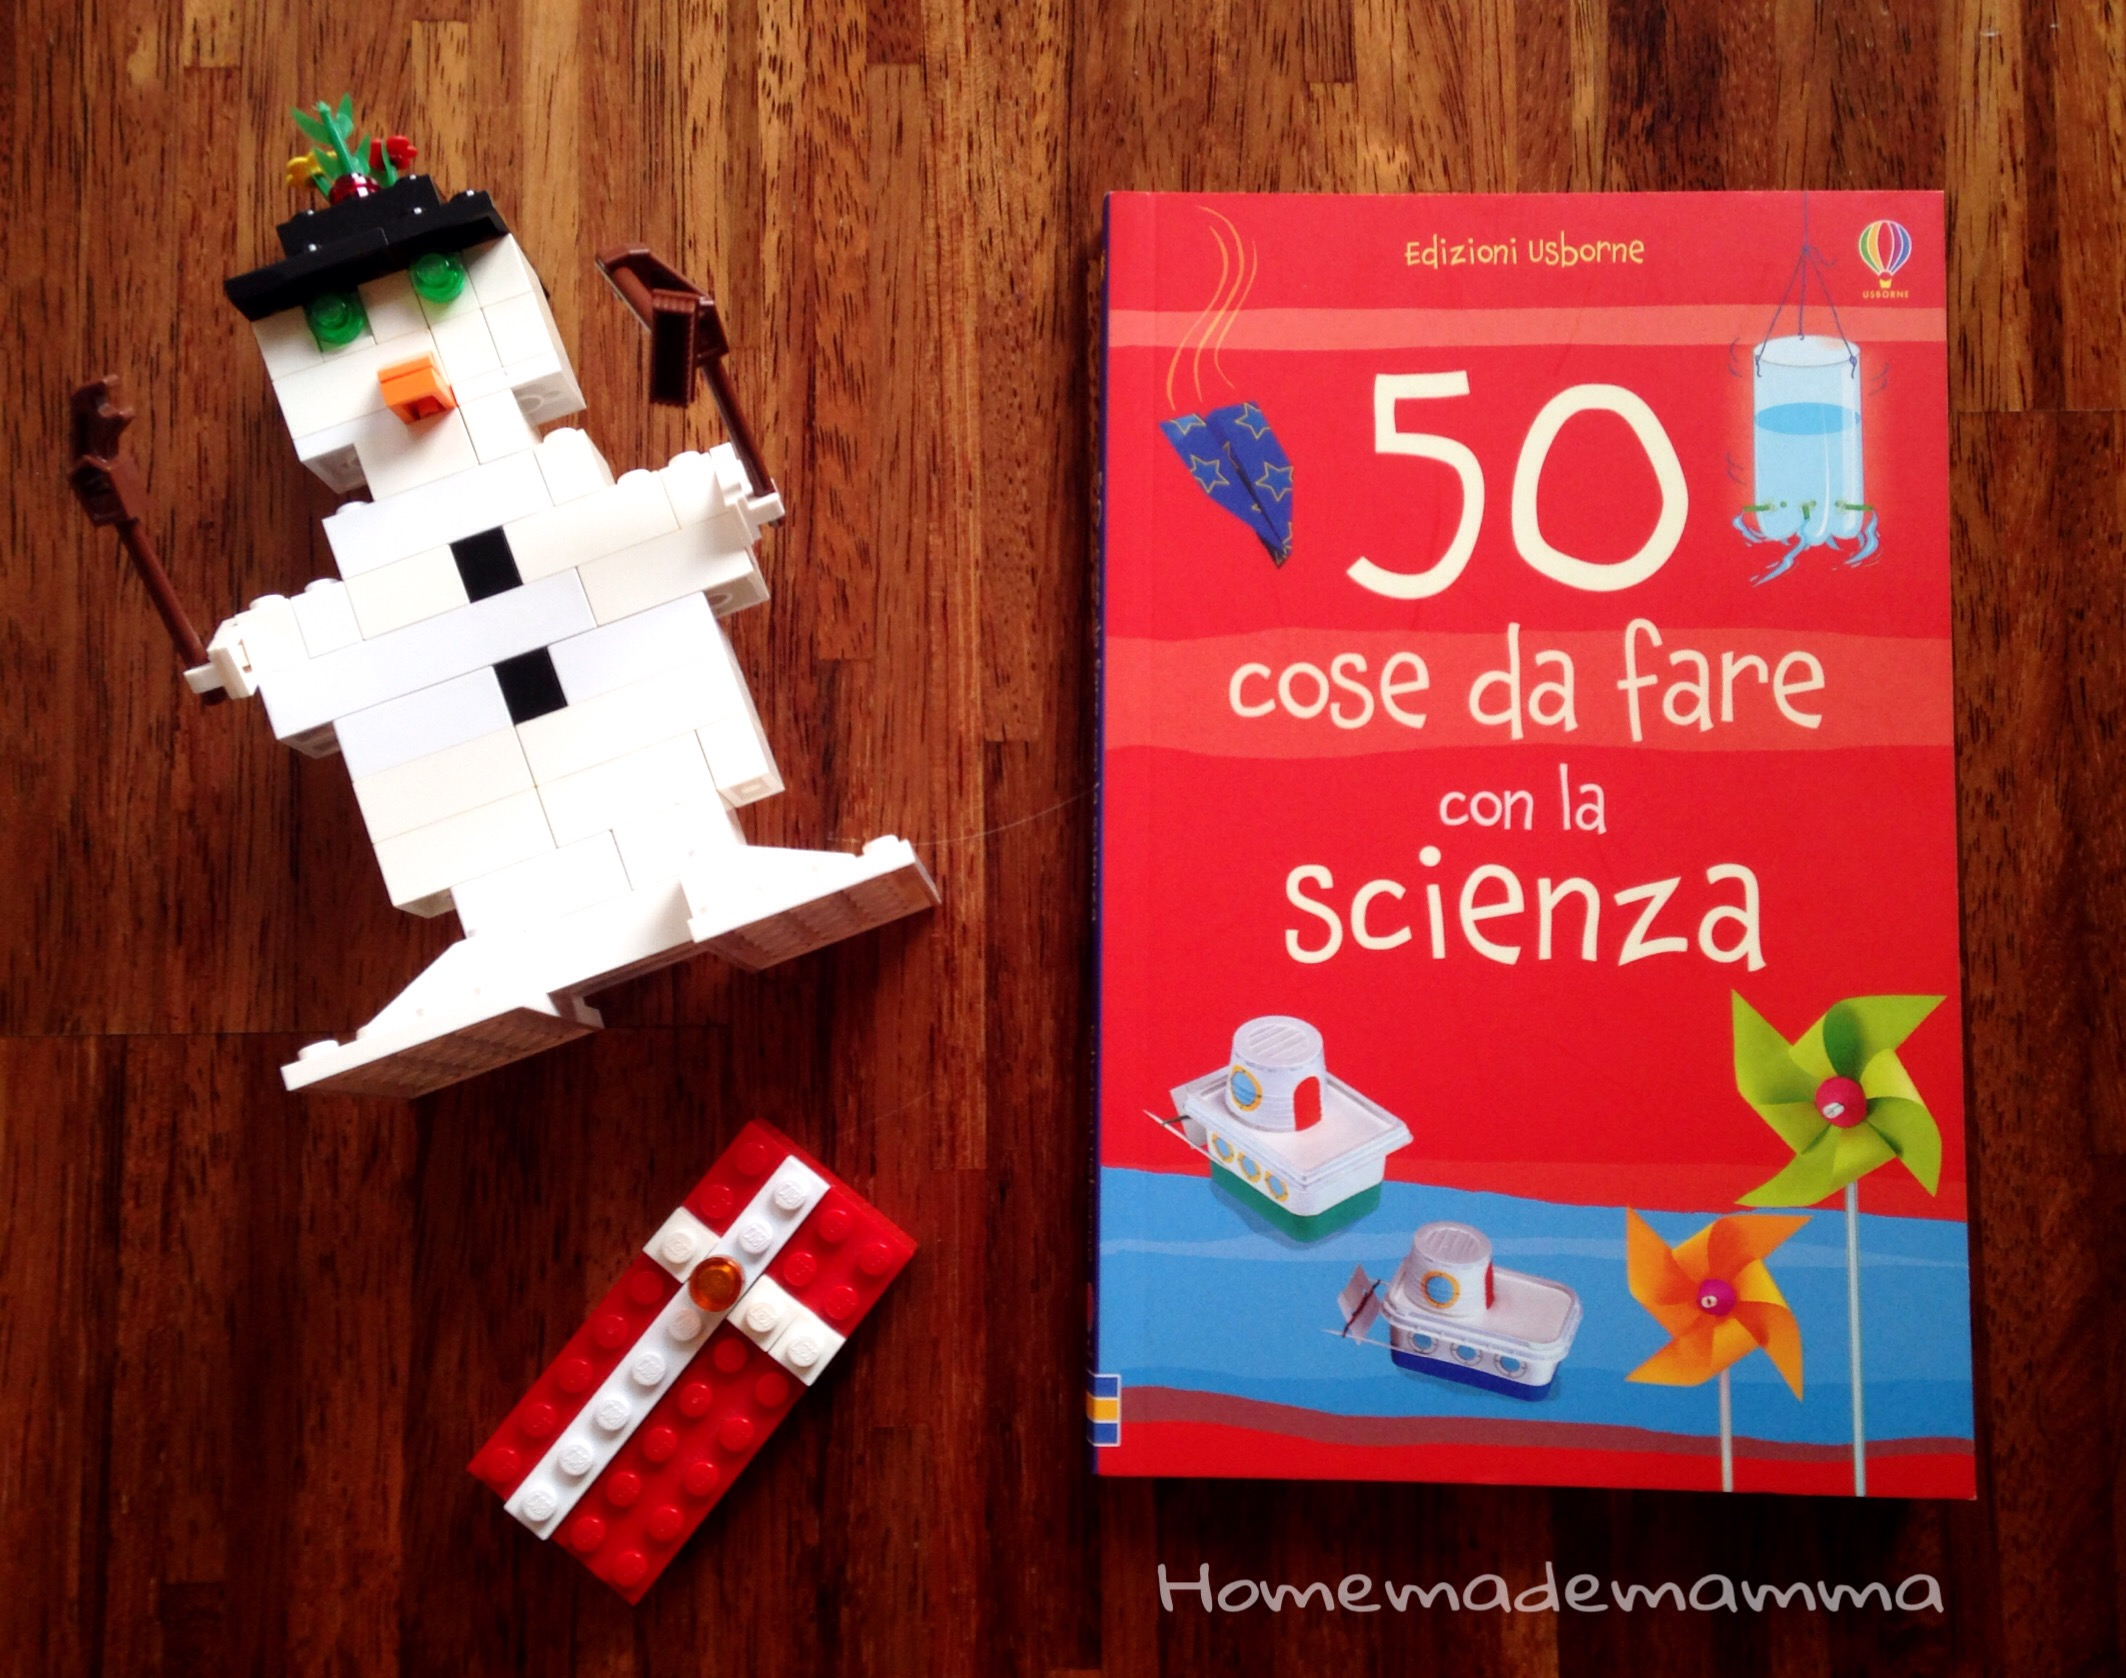 usborne 50 cose da fare scienza homemademamma